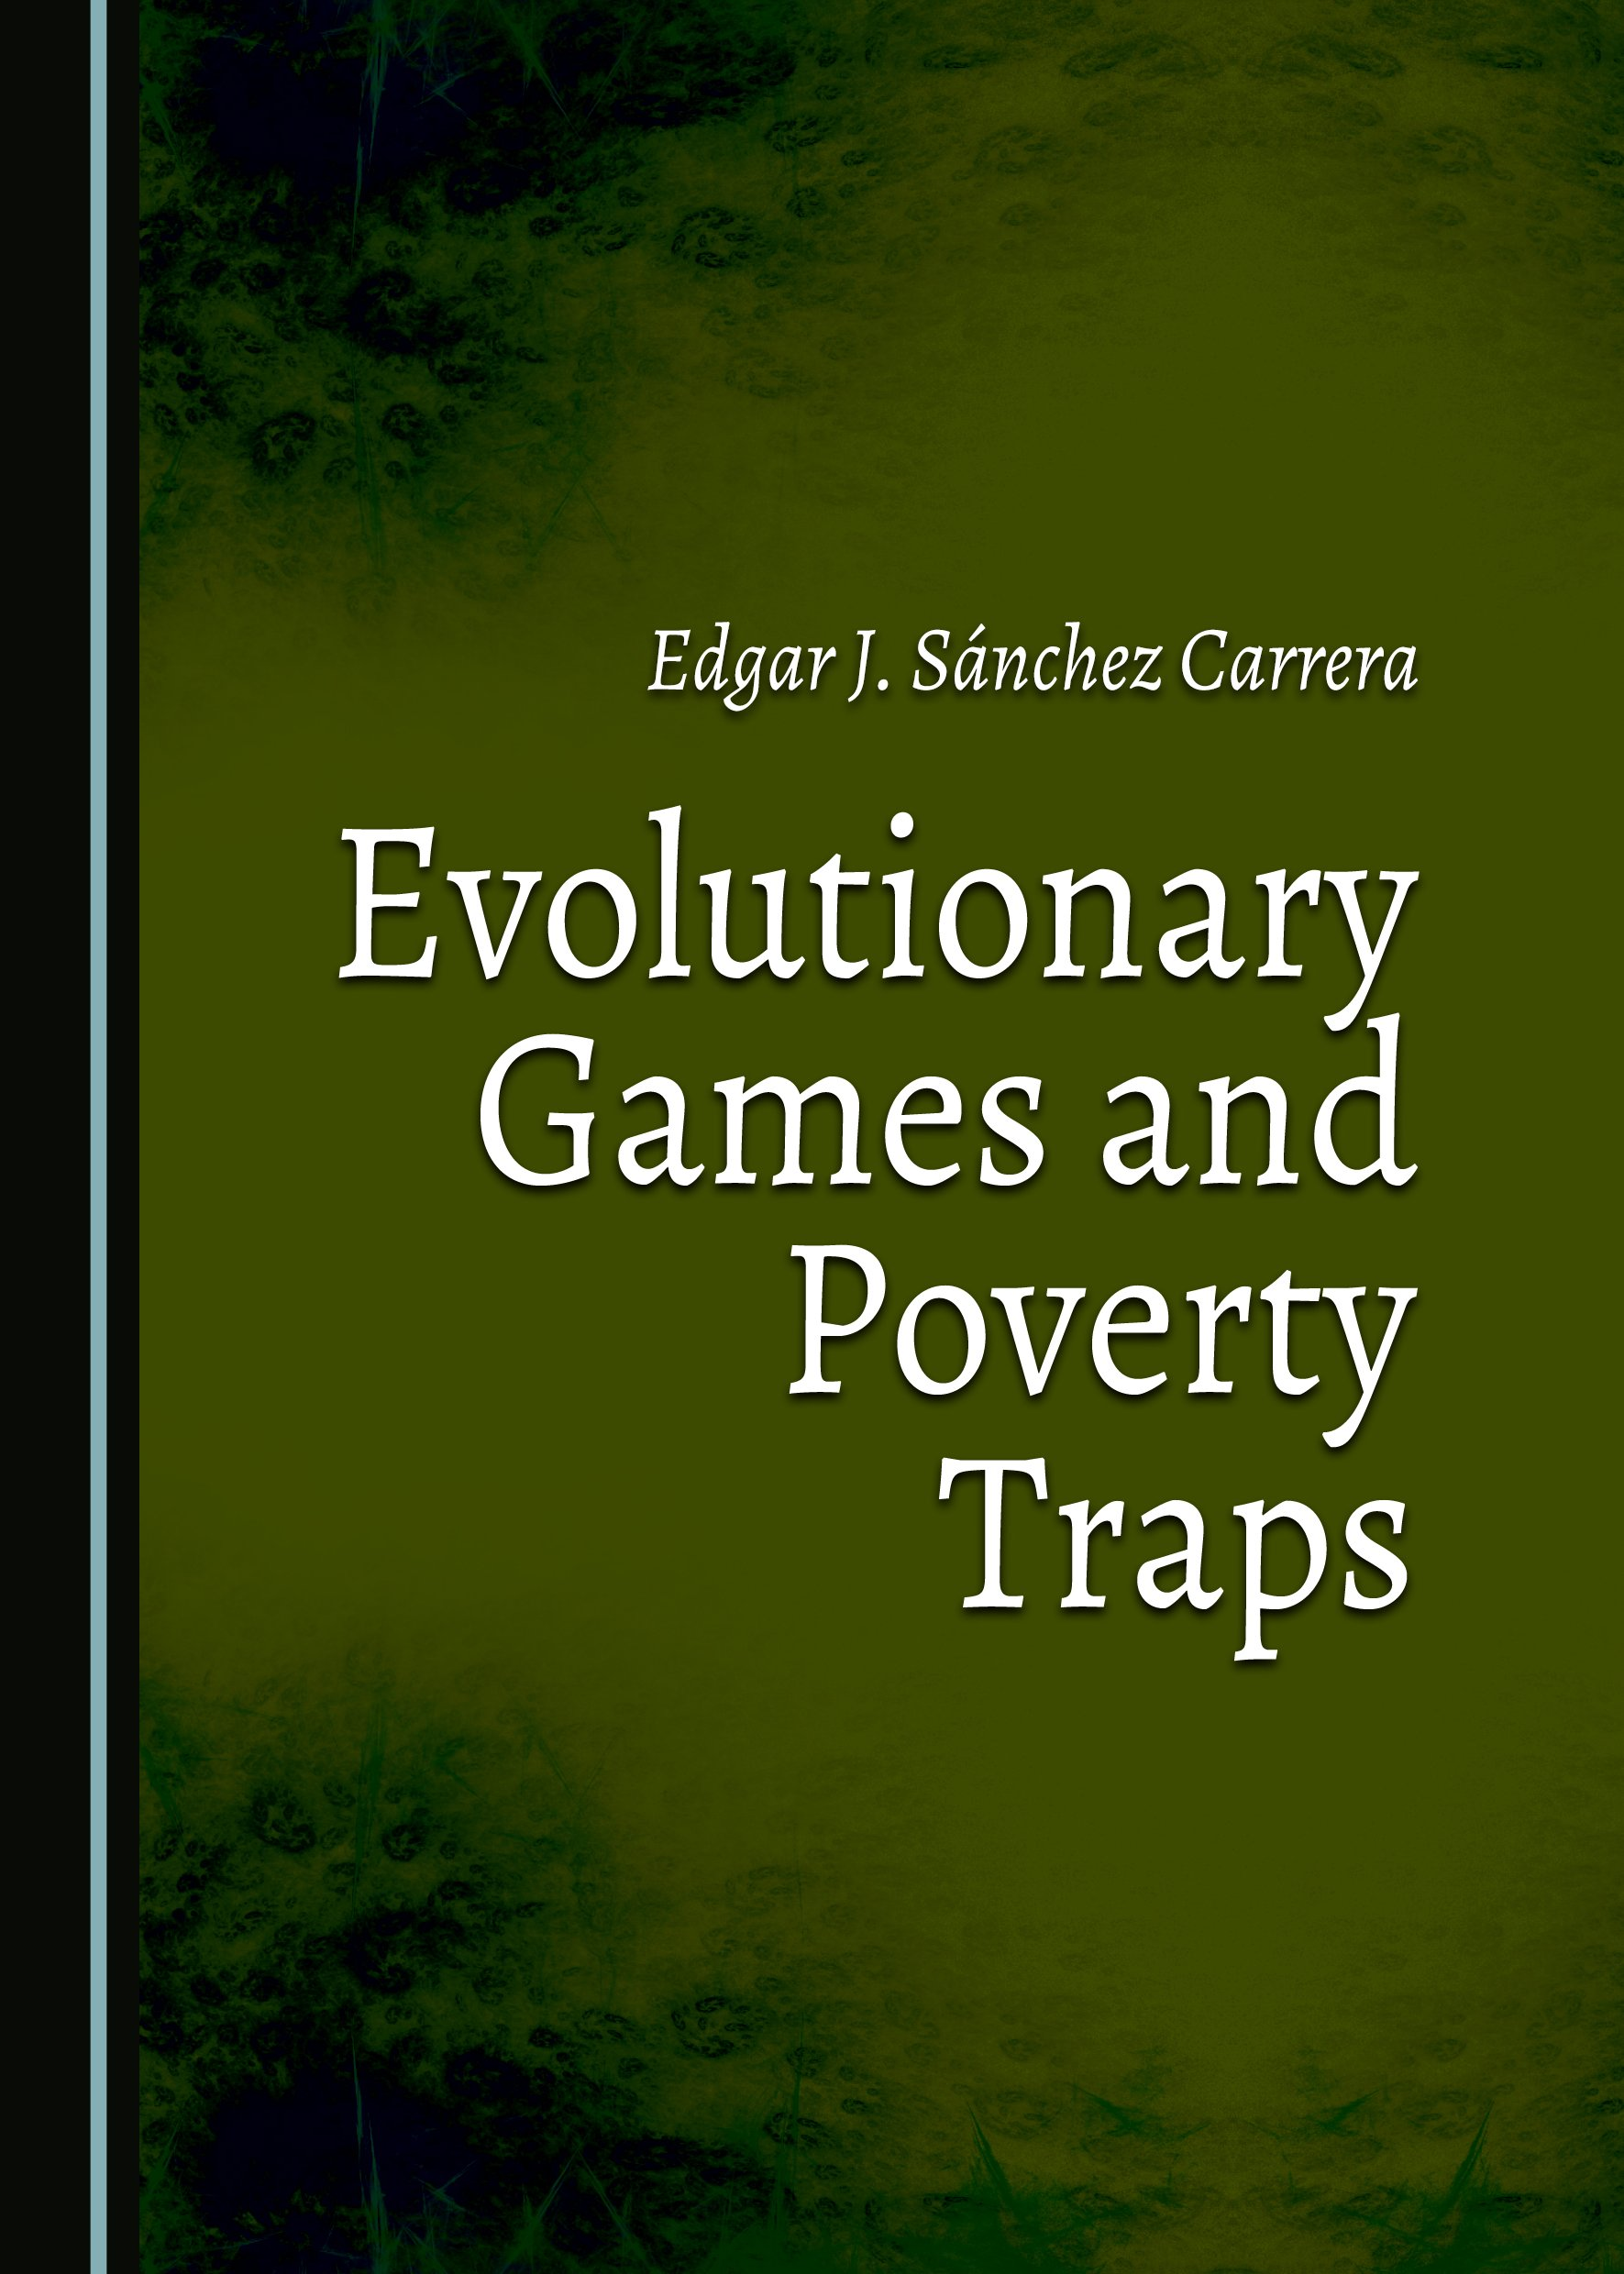 Evolutionary Games and Poverty Traps